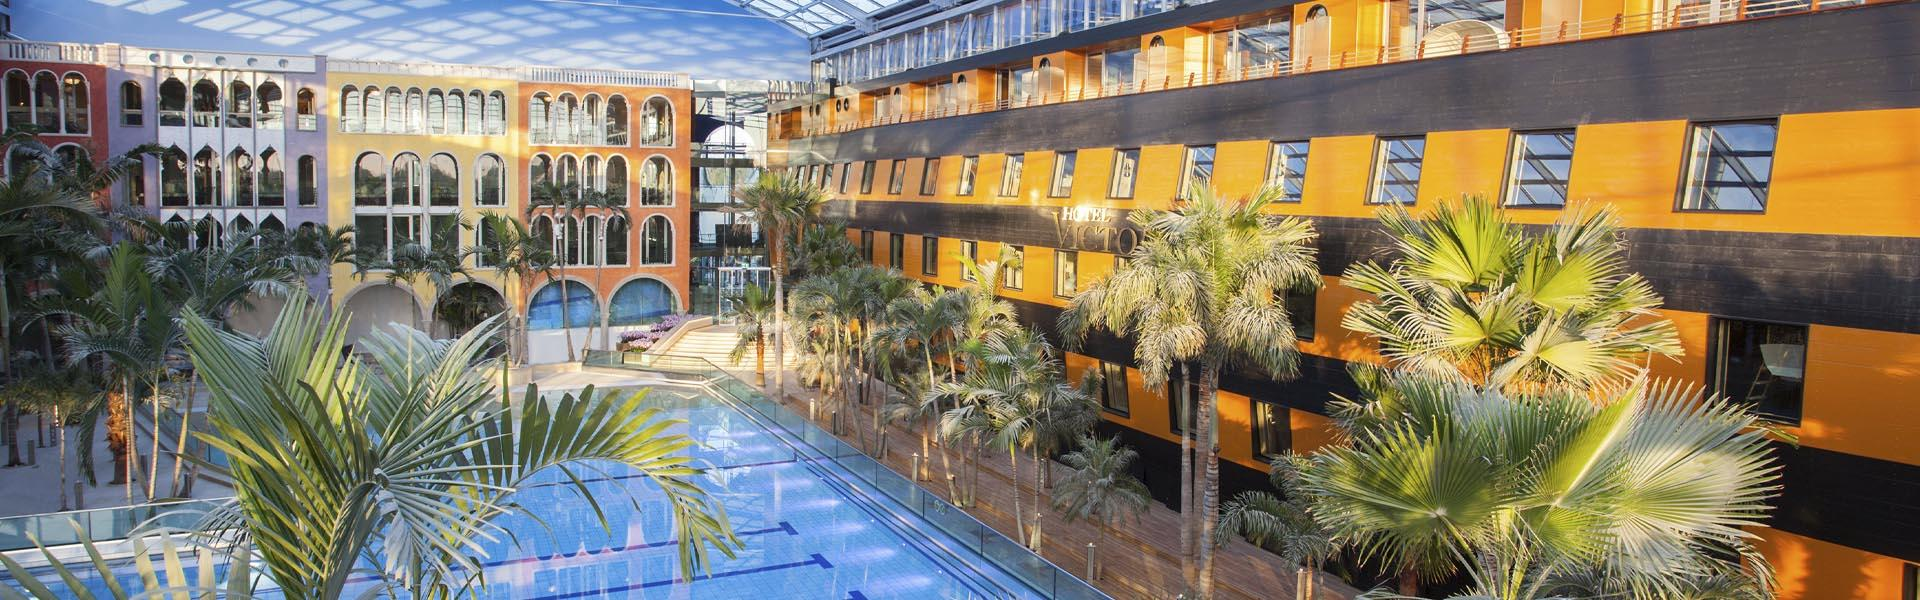 therme erding plan